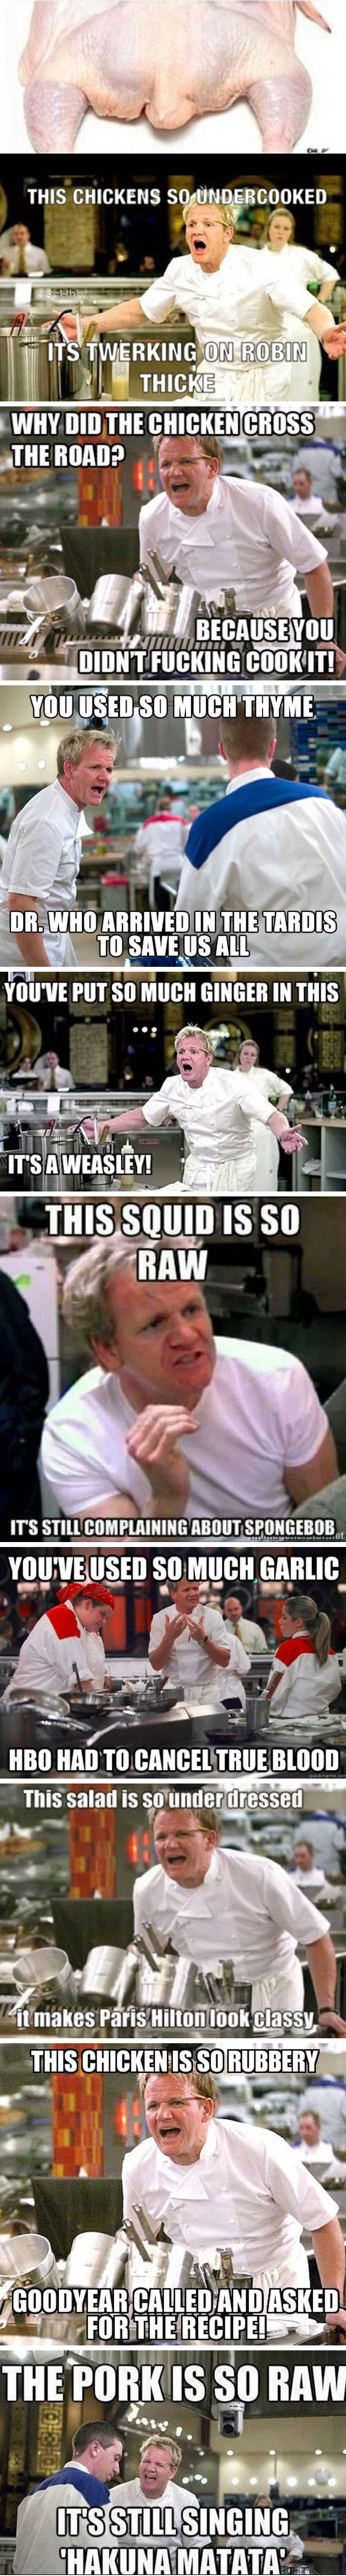 Gordon Ramsay chicken anger.  I really needed a good laugh!  Thanks Ramsey!